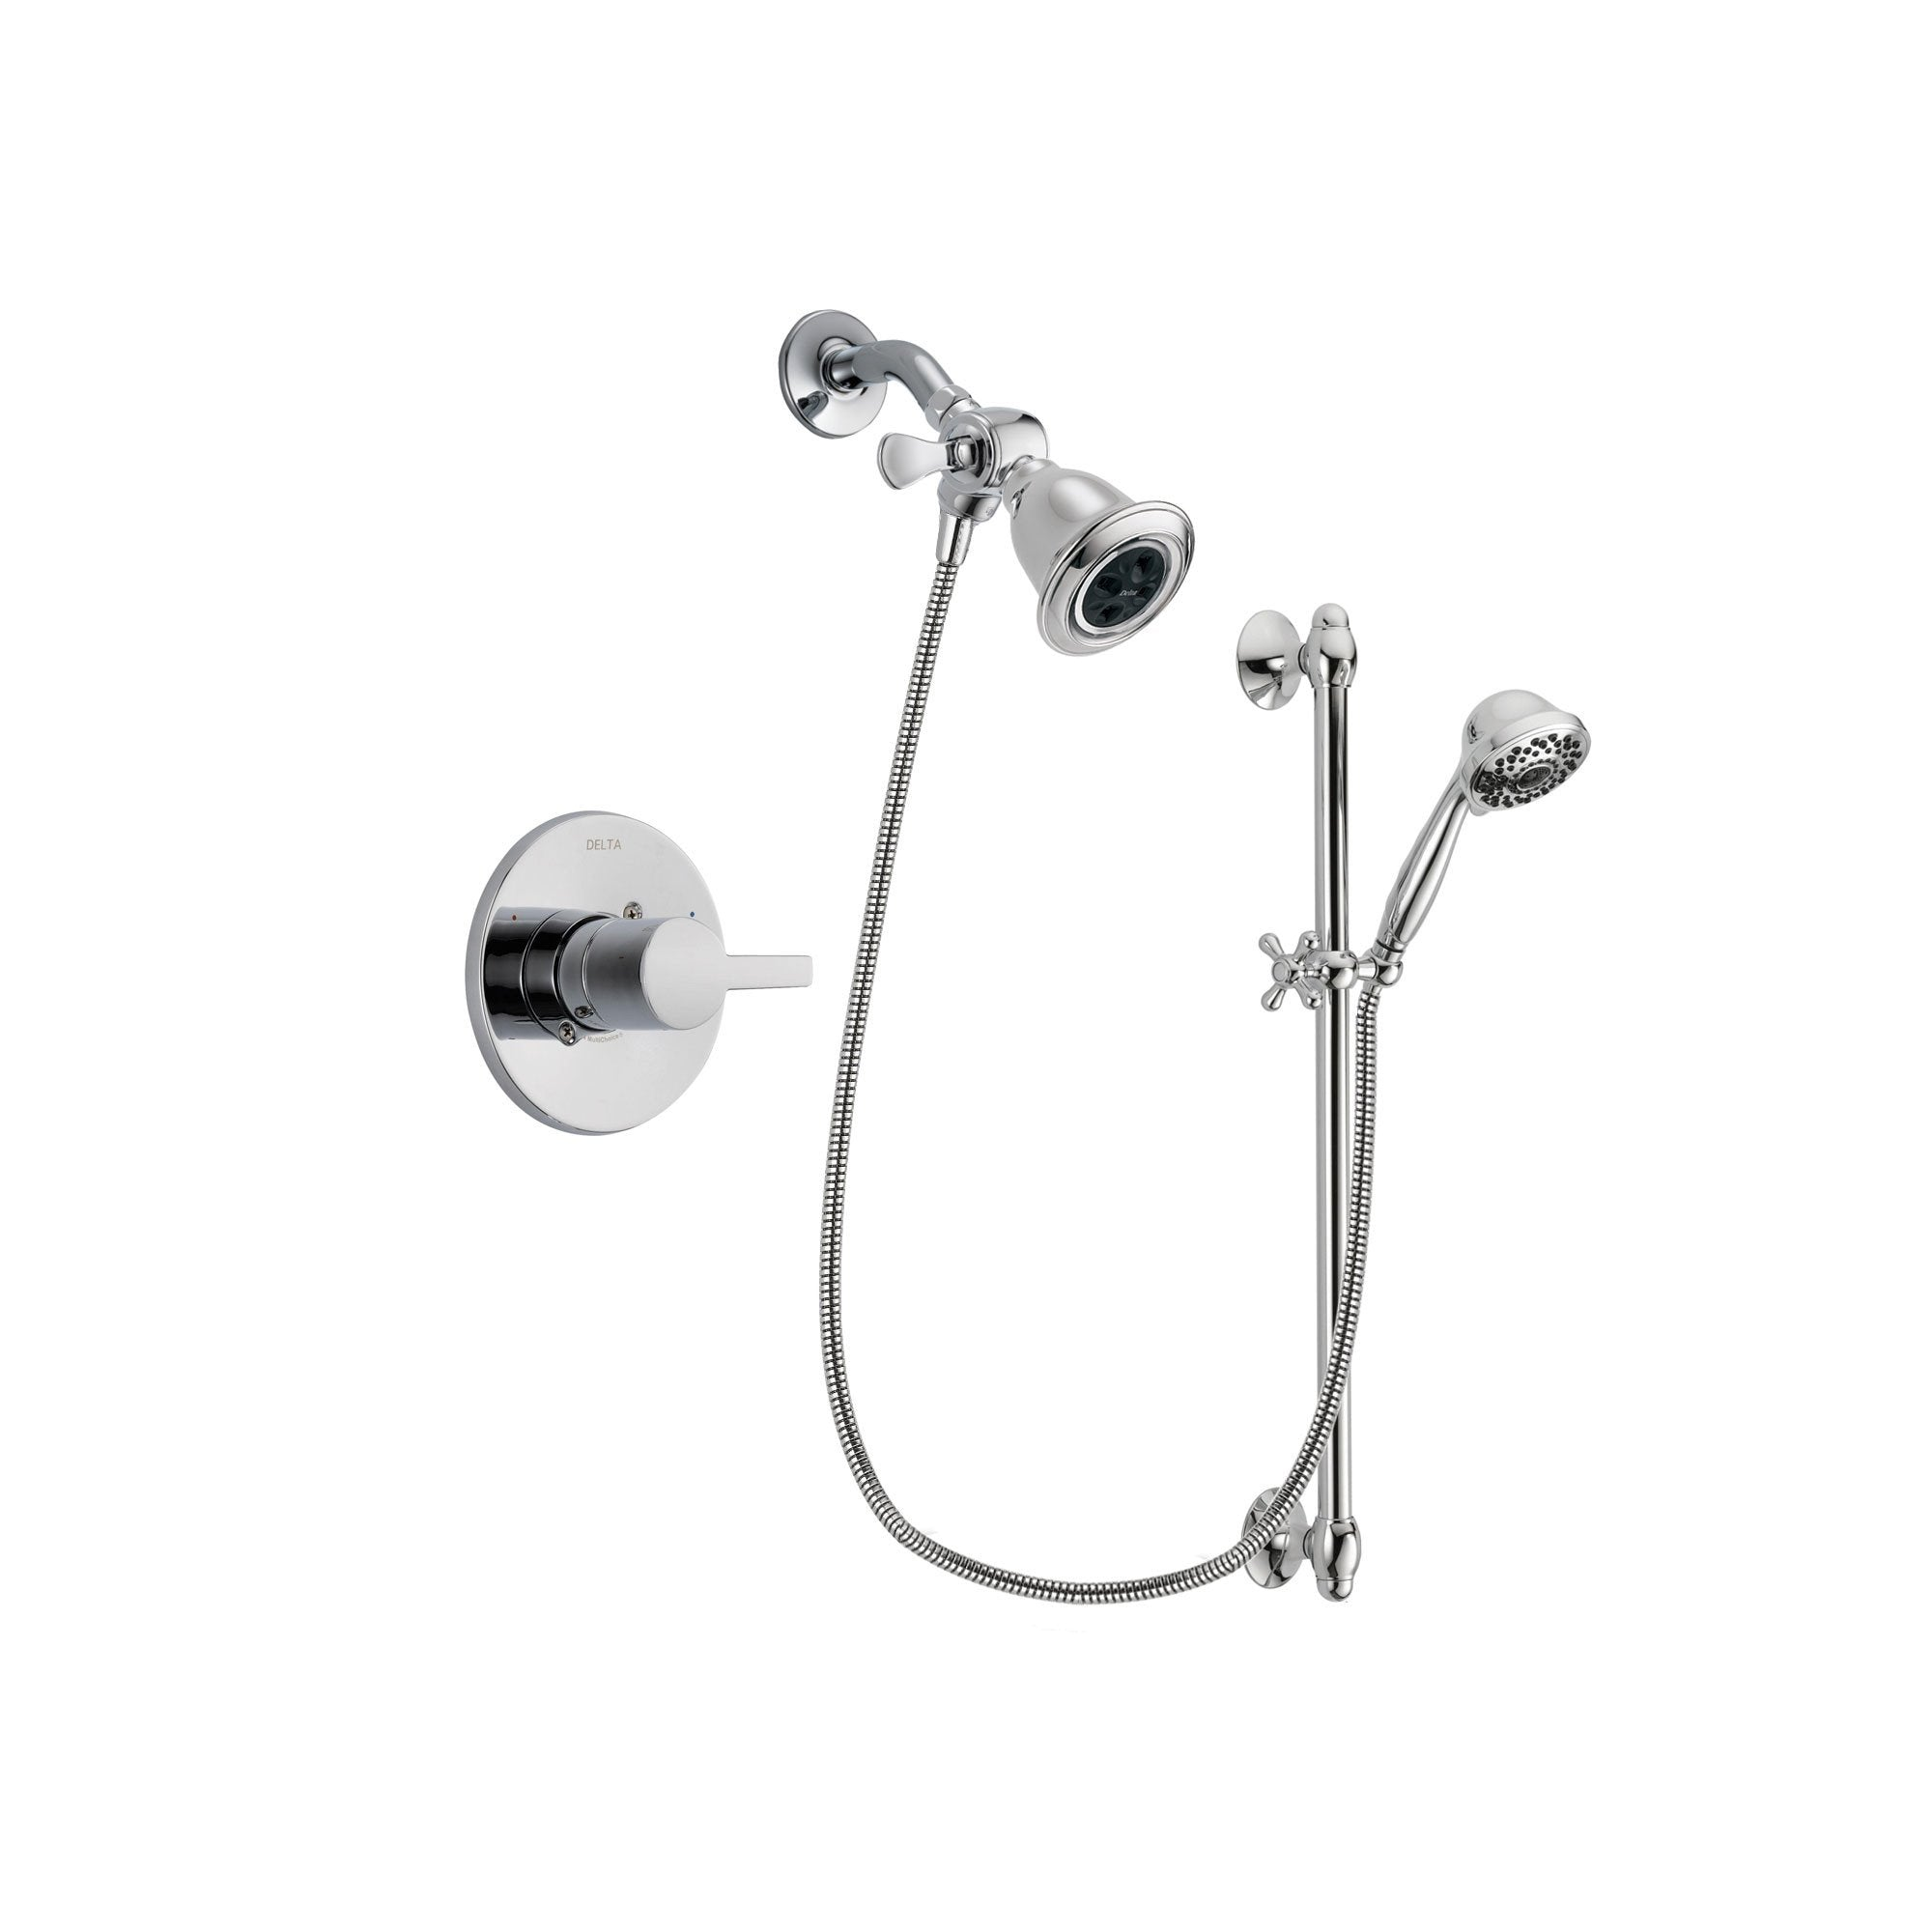 Delta Compel Chrome Shower Faucet System w/ Shower Head and Hand Shower DSP0610V